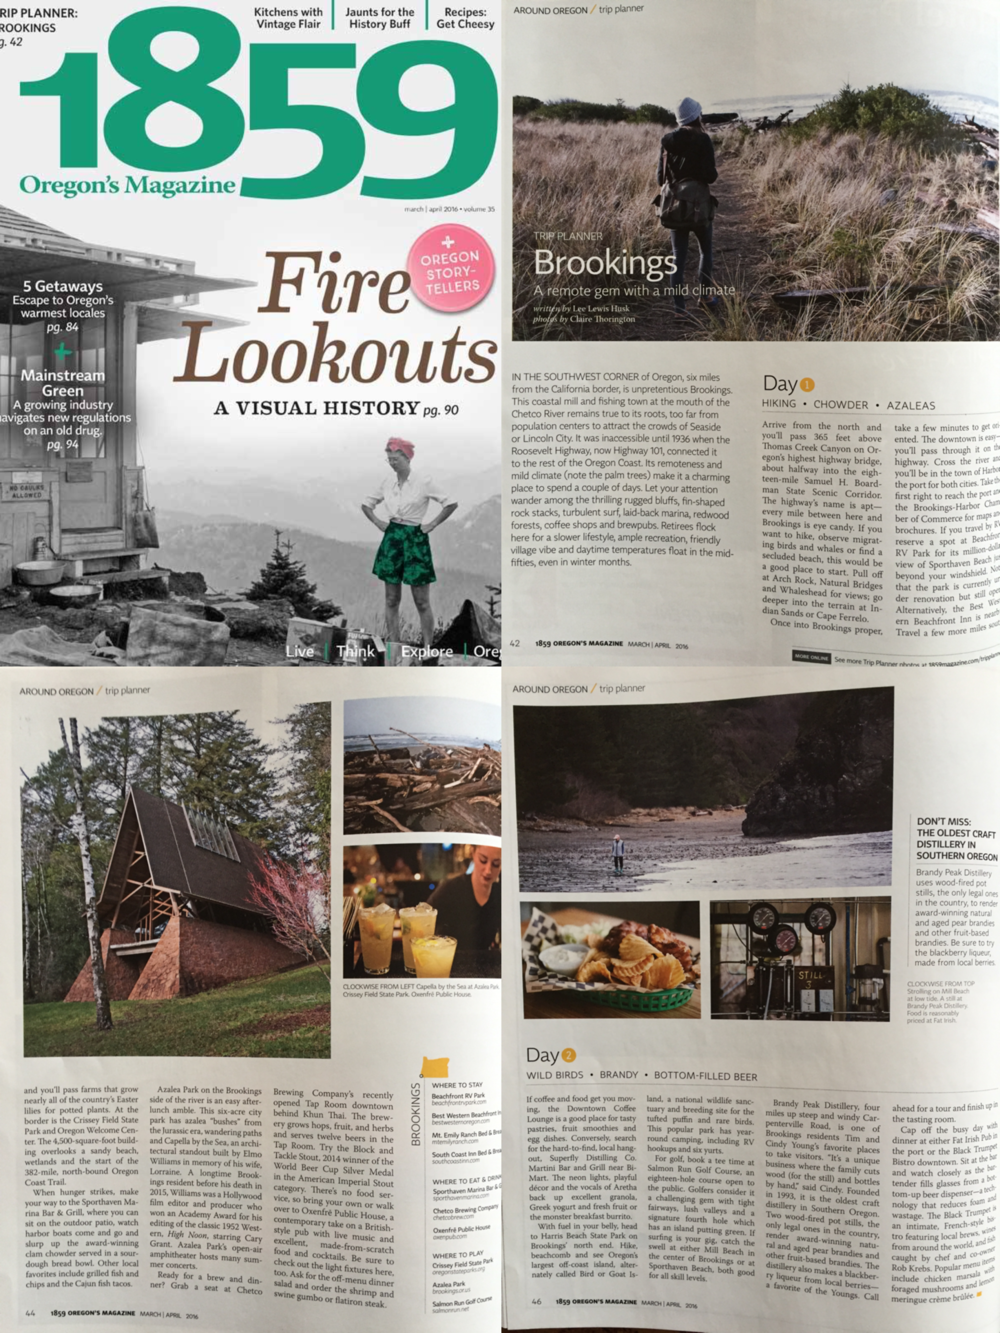 1859 Oregon's Magazine - March/April 2016